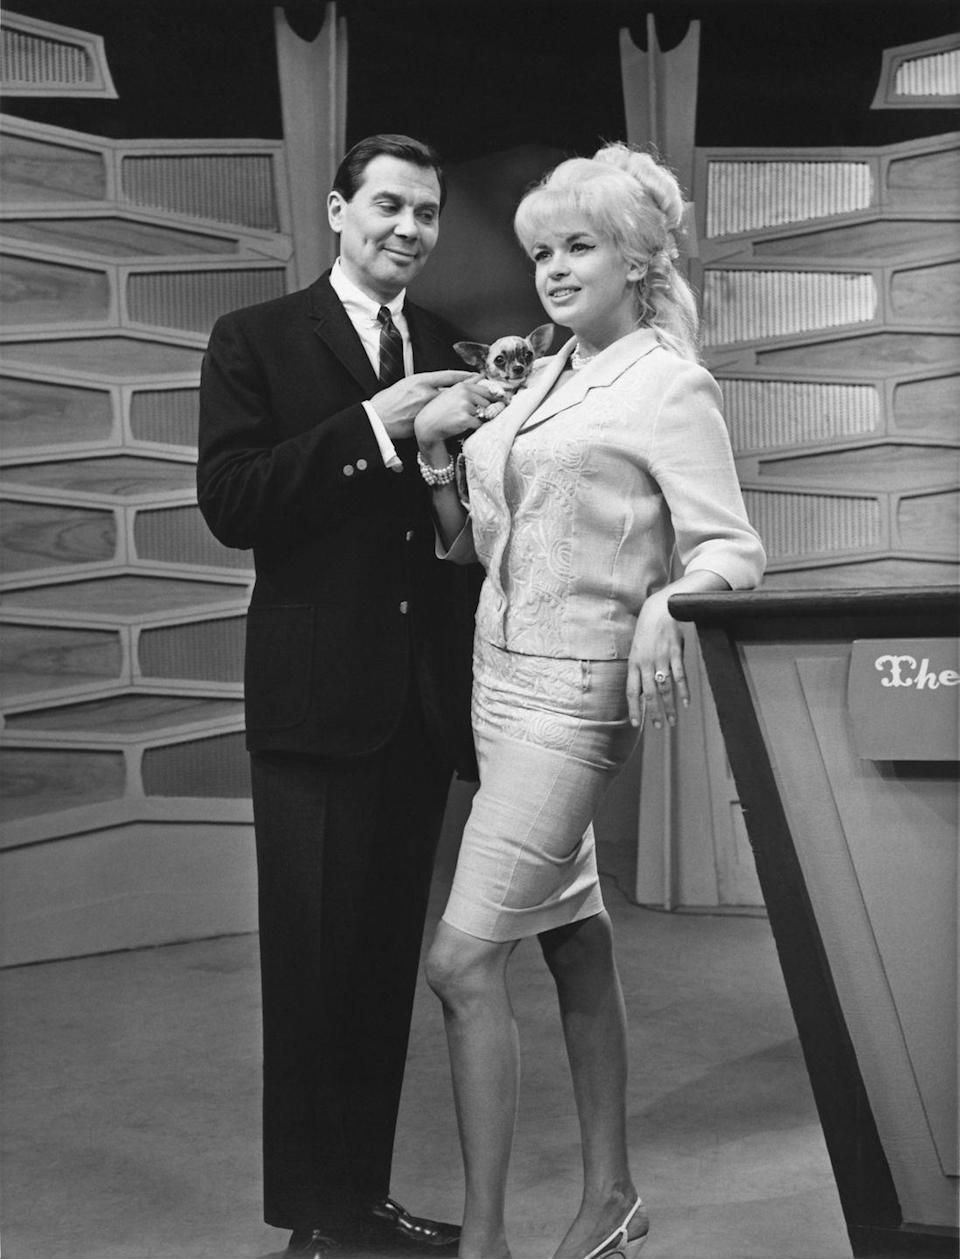 <p>After her contract with 20th Century Fox was up in 1962, the studio chose not to resign her. The result was a devastating blow to Mansfield's career. She filled her time by appearing on game shows and TV programs. </p>